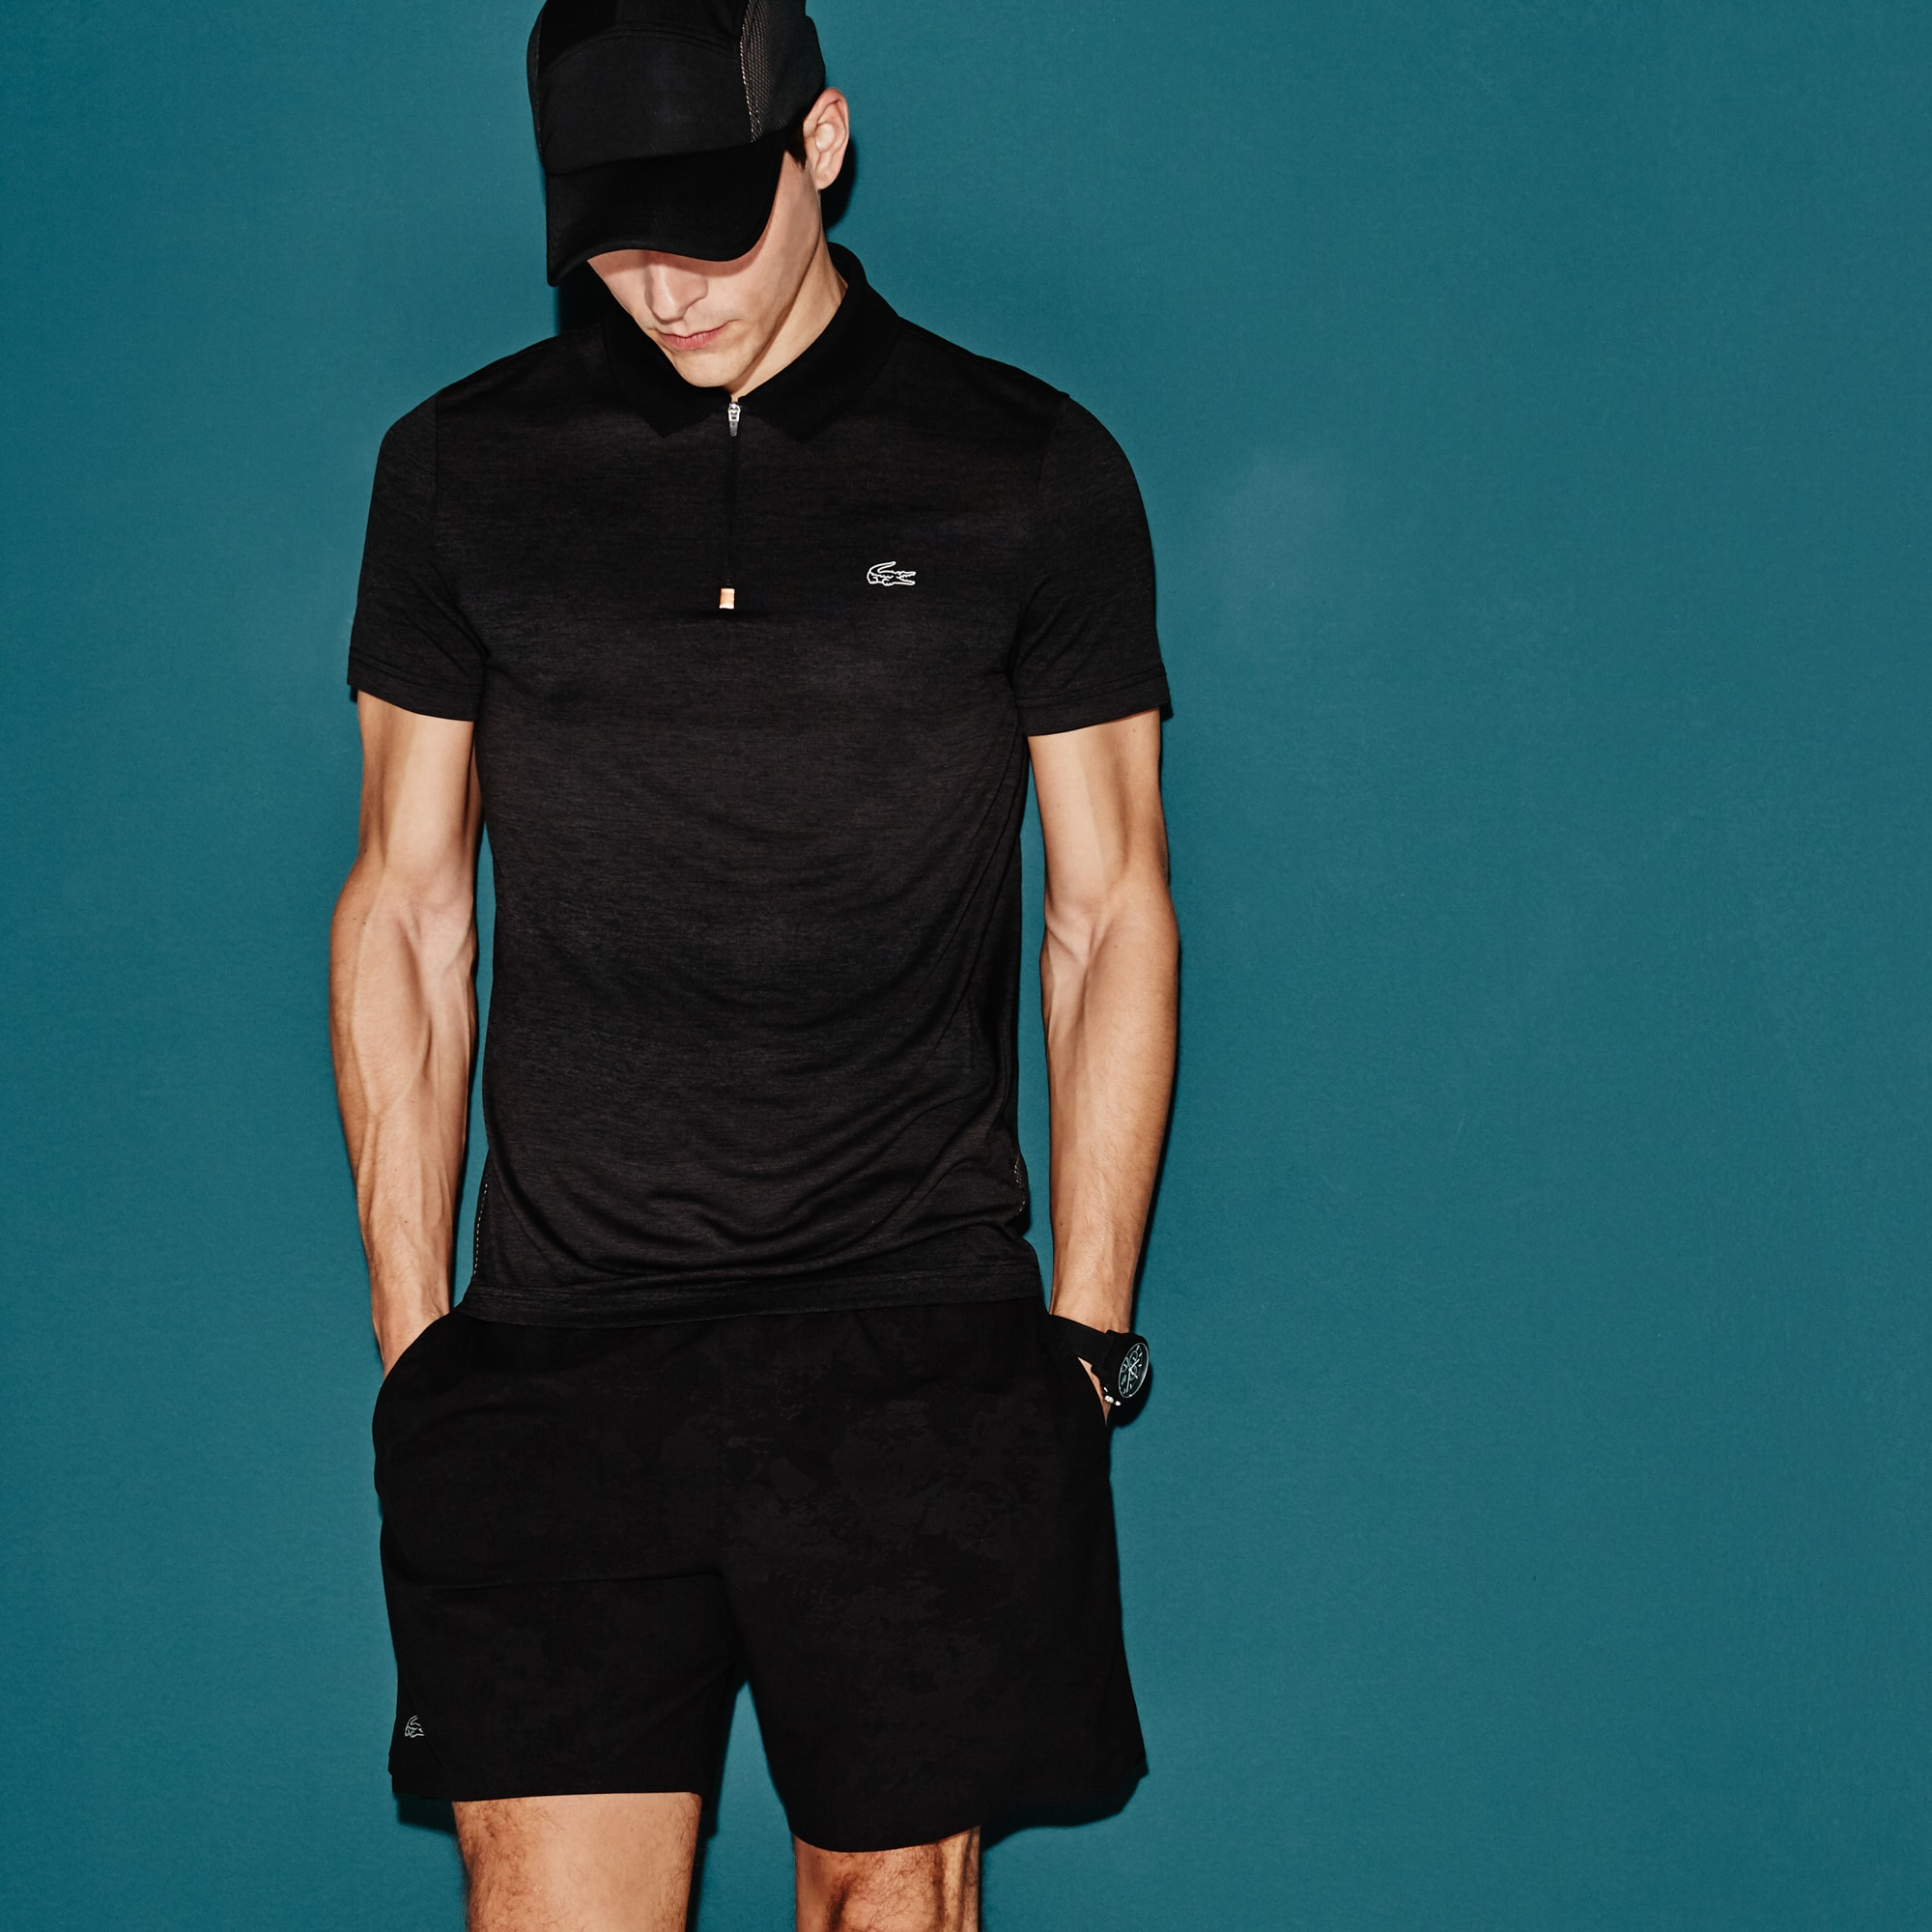 Men's Lacoste SPORT Tennis Zip Neck Mesh Back Tech Jersey Polo